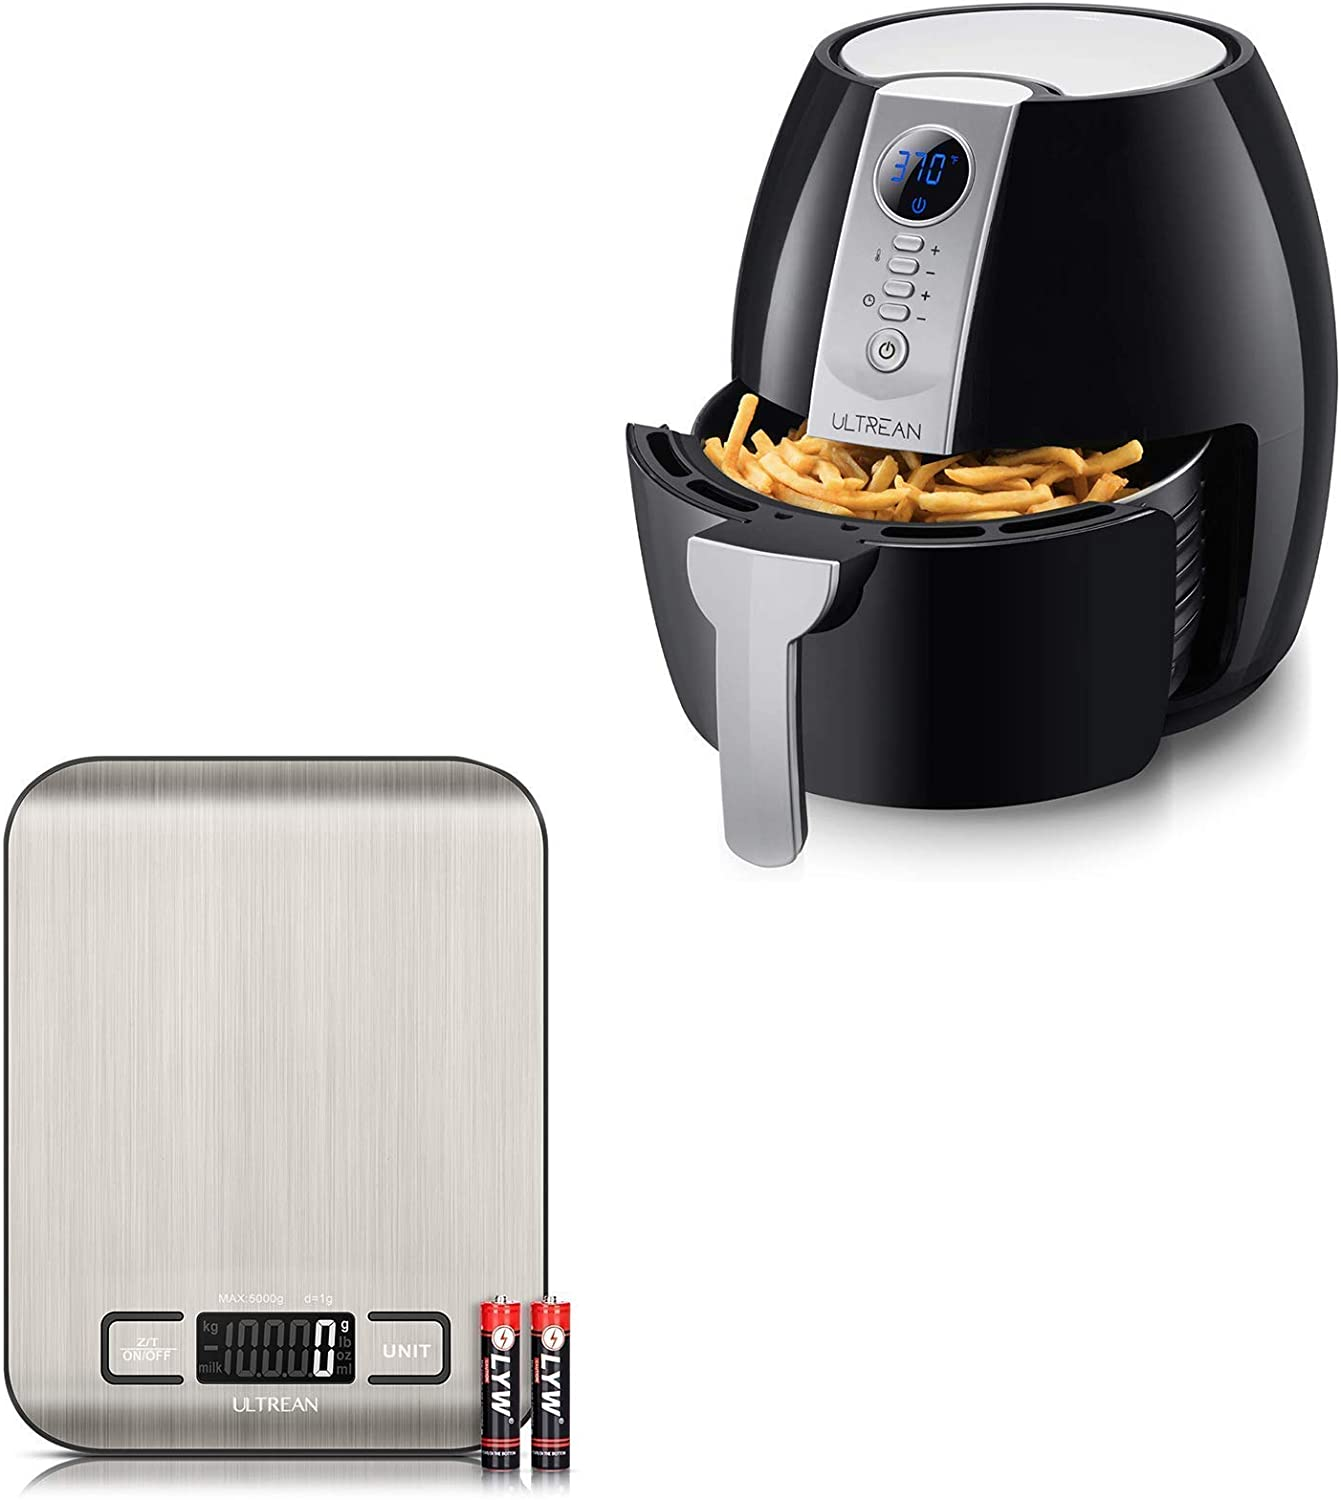 Ultrean Digital Food Scale and Ultrean 4.2 Quart (4 Liter) Air Fryer